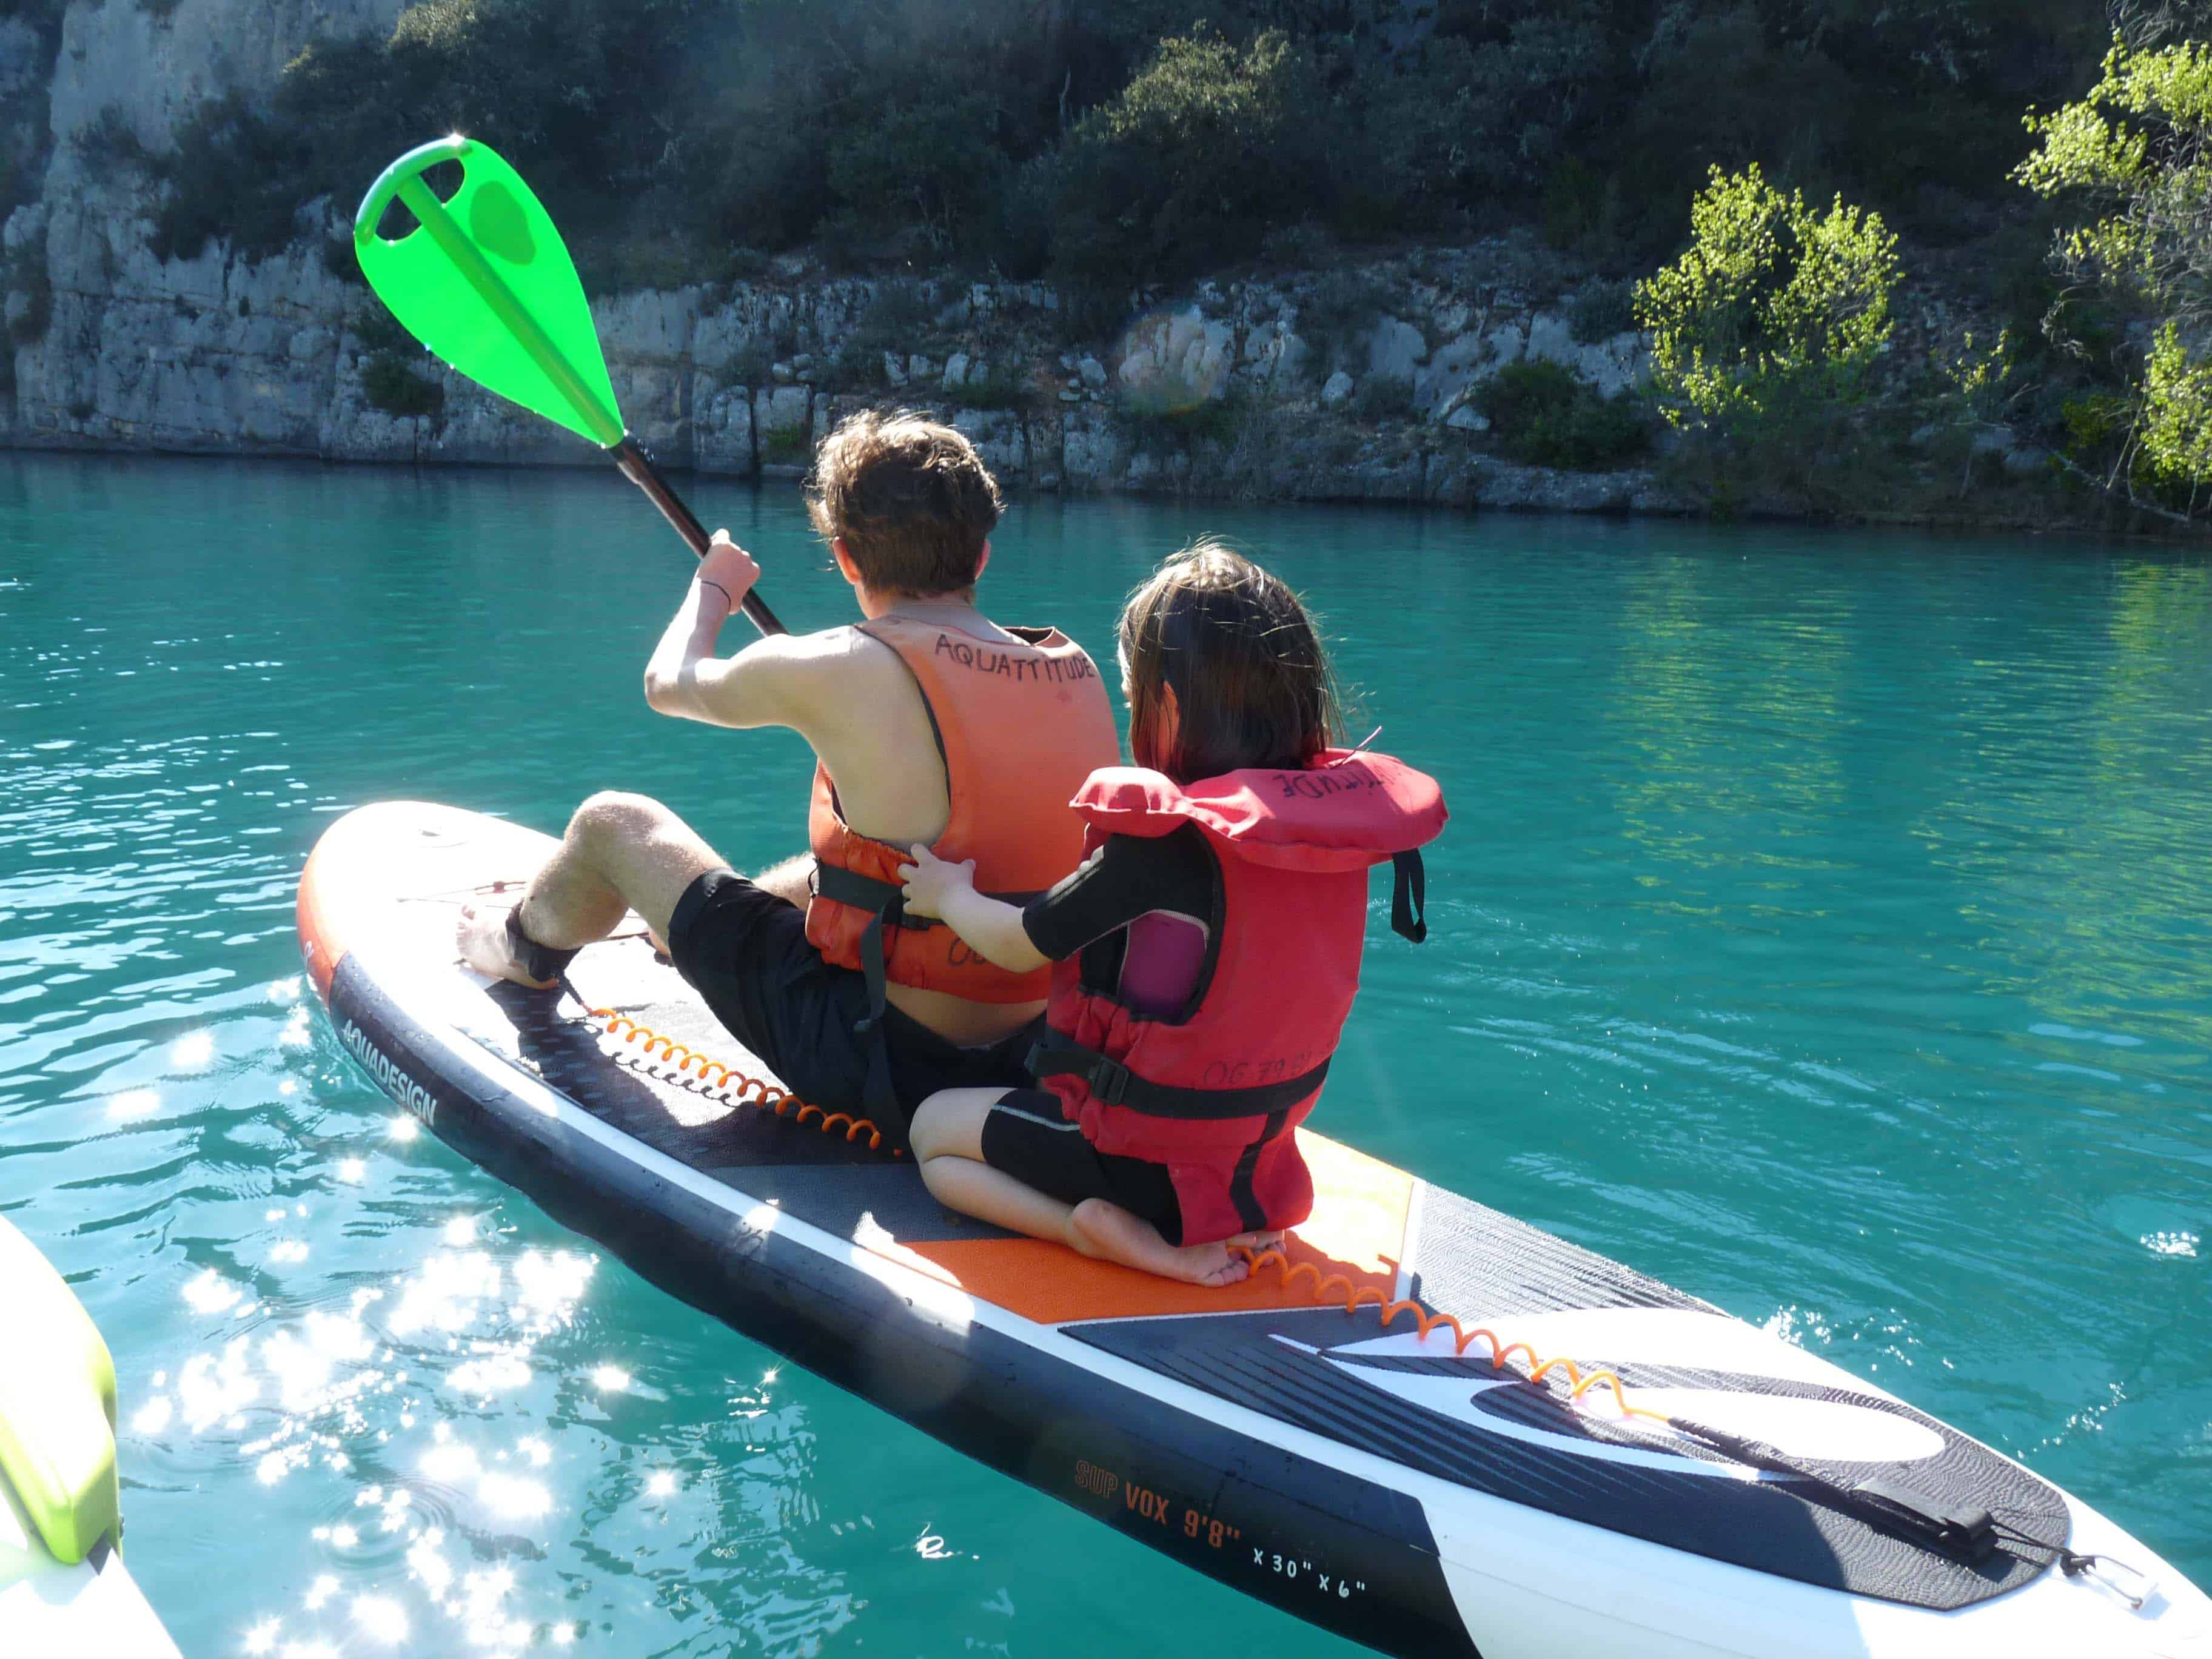 Aquattitude Verdon Canoe Kayak Pedalo paddle ran do VTT